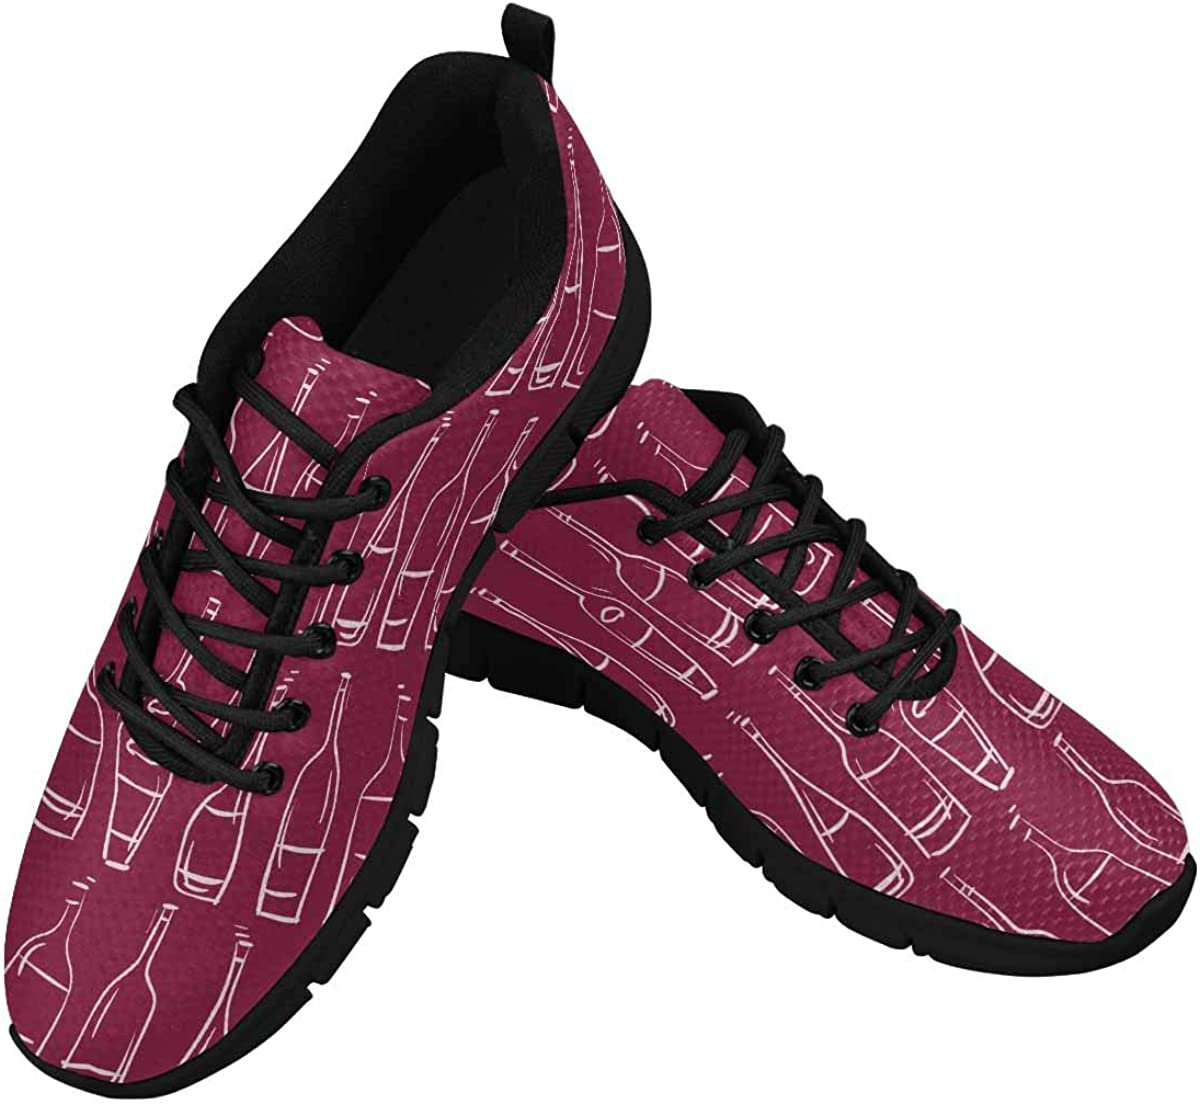 INTERESTPRINT Hand Drawn Wine Bottles Women's Athletic Mesh Breathable Casual Sneakers